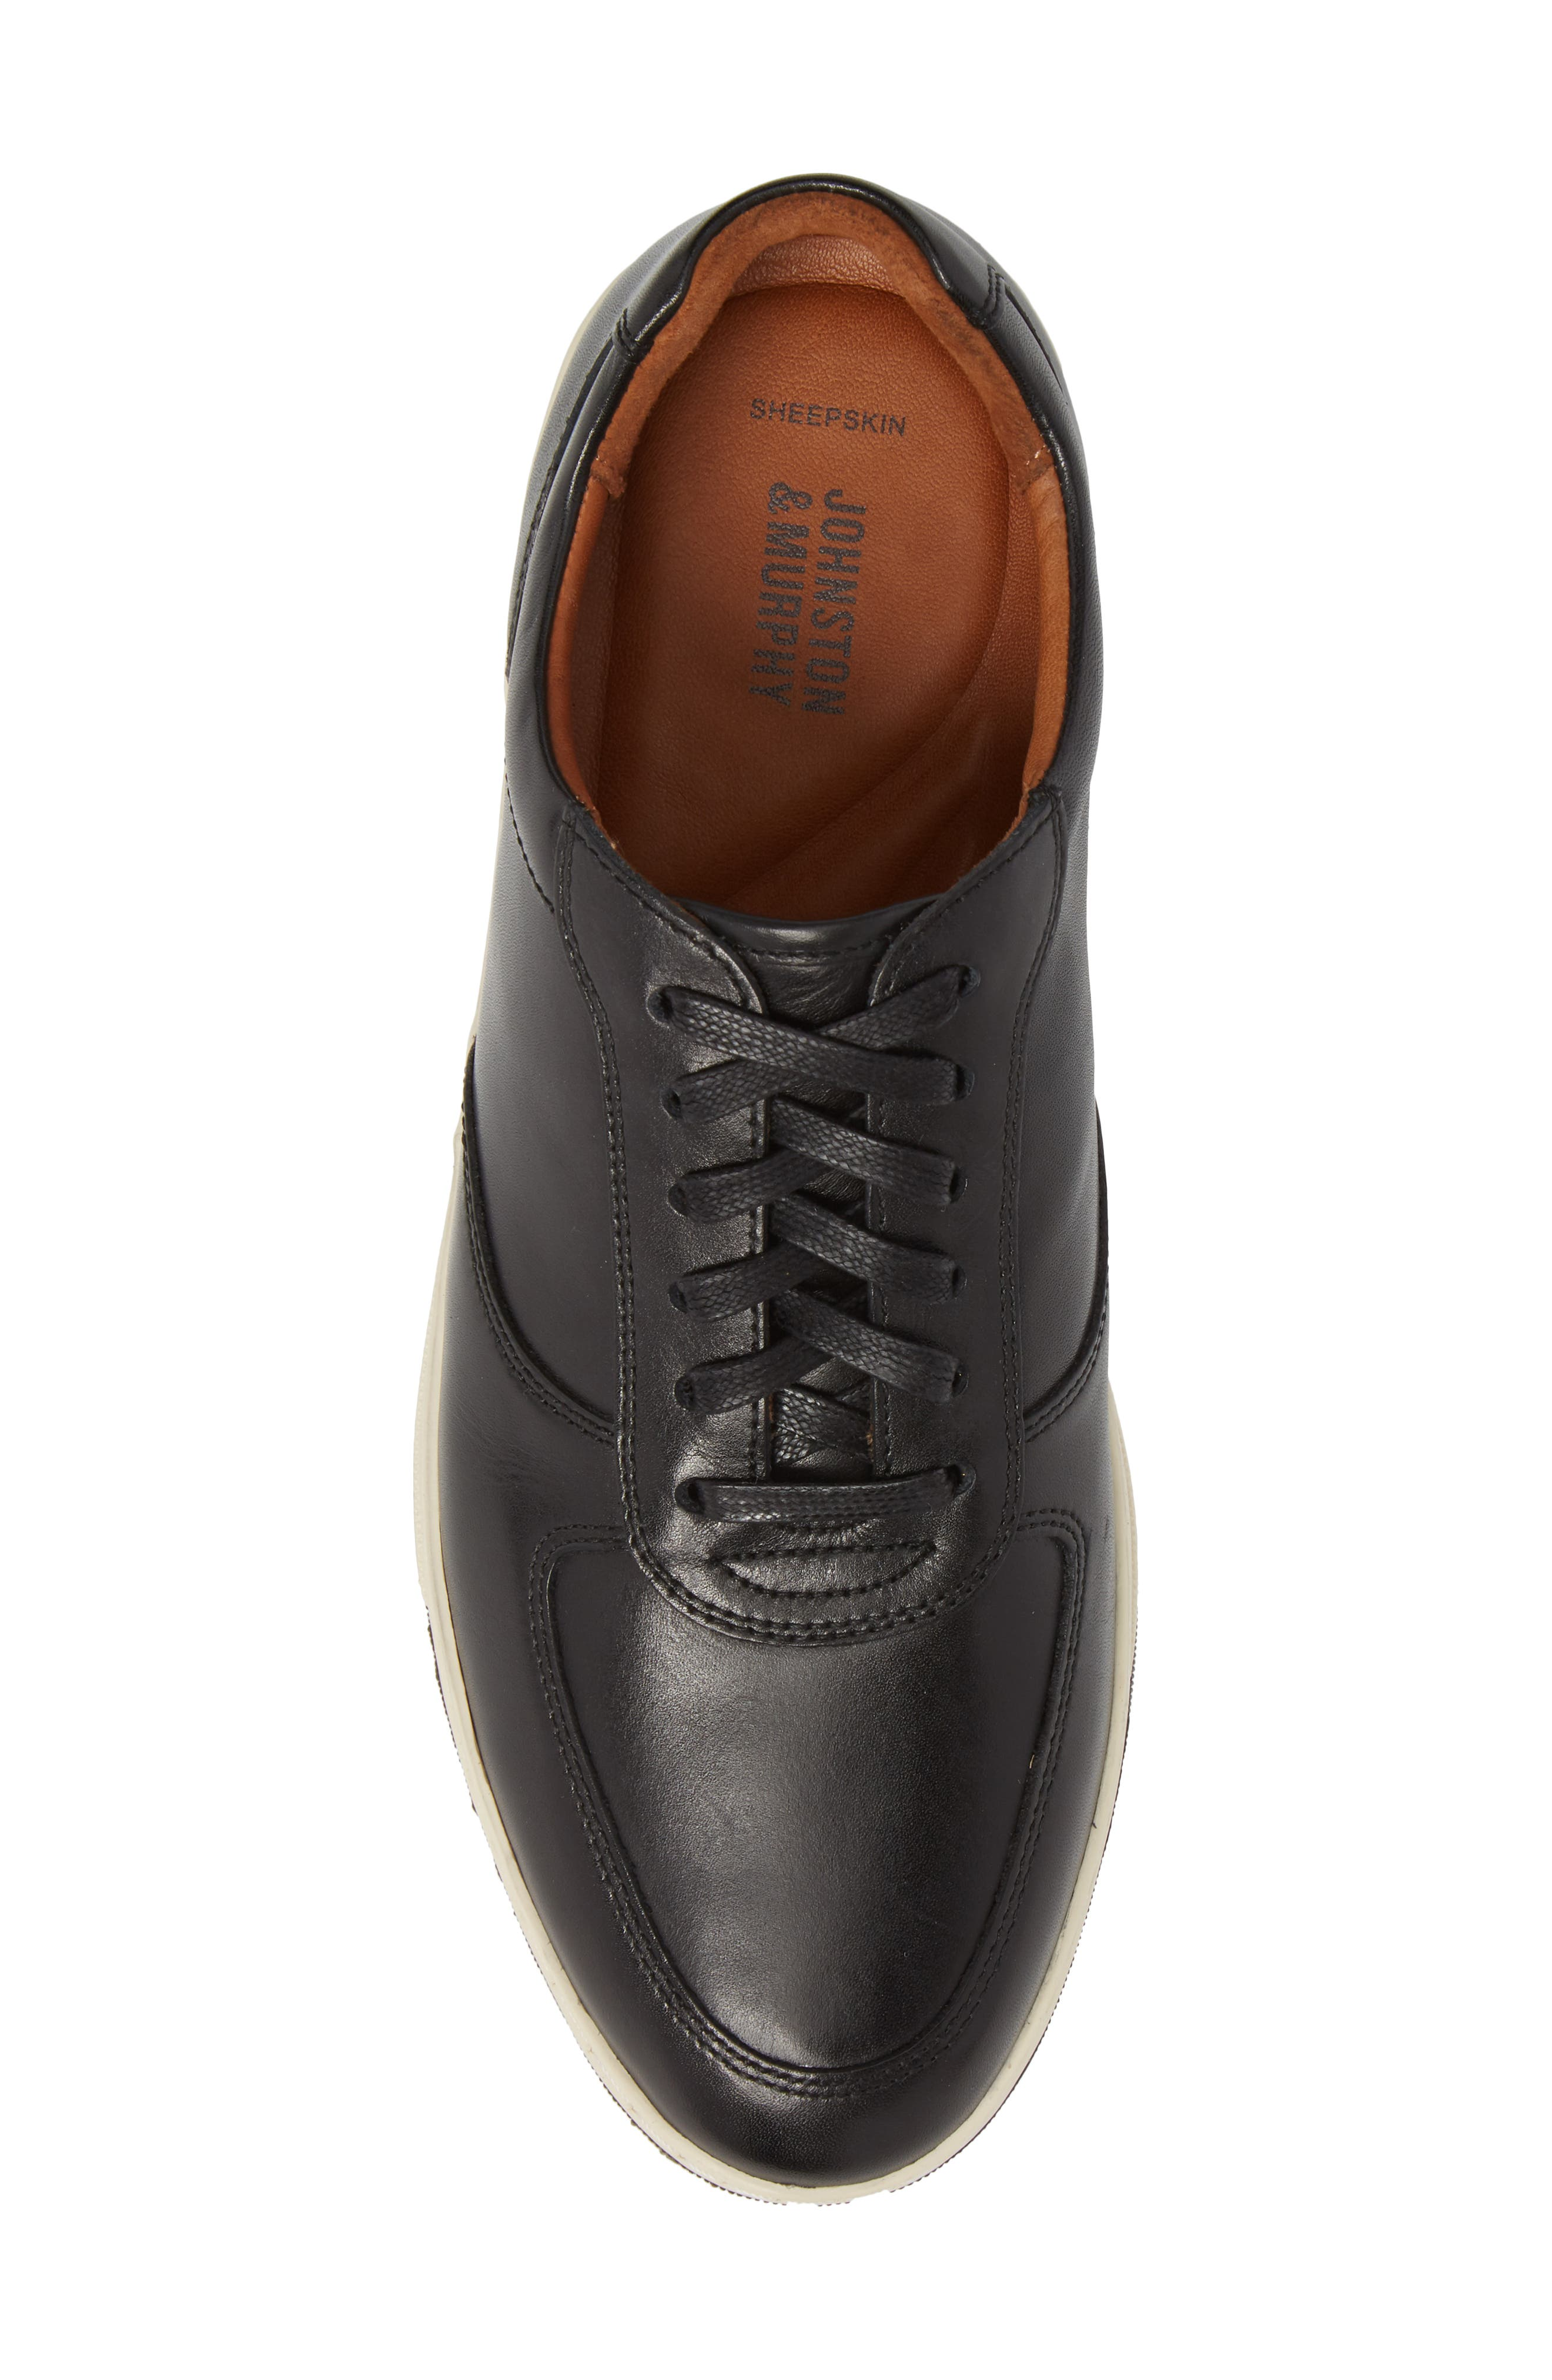 Fenton Low Top Sneaker,                             Alternate thumbnail 5, color,                             Black Leather